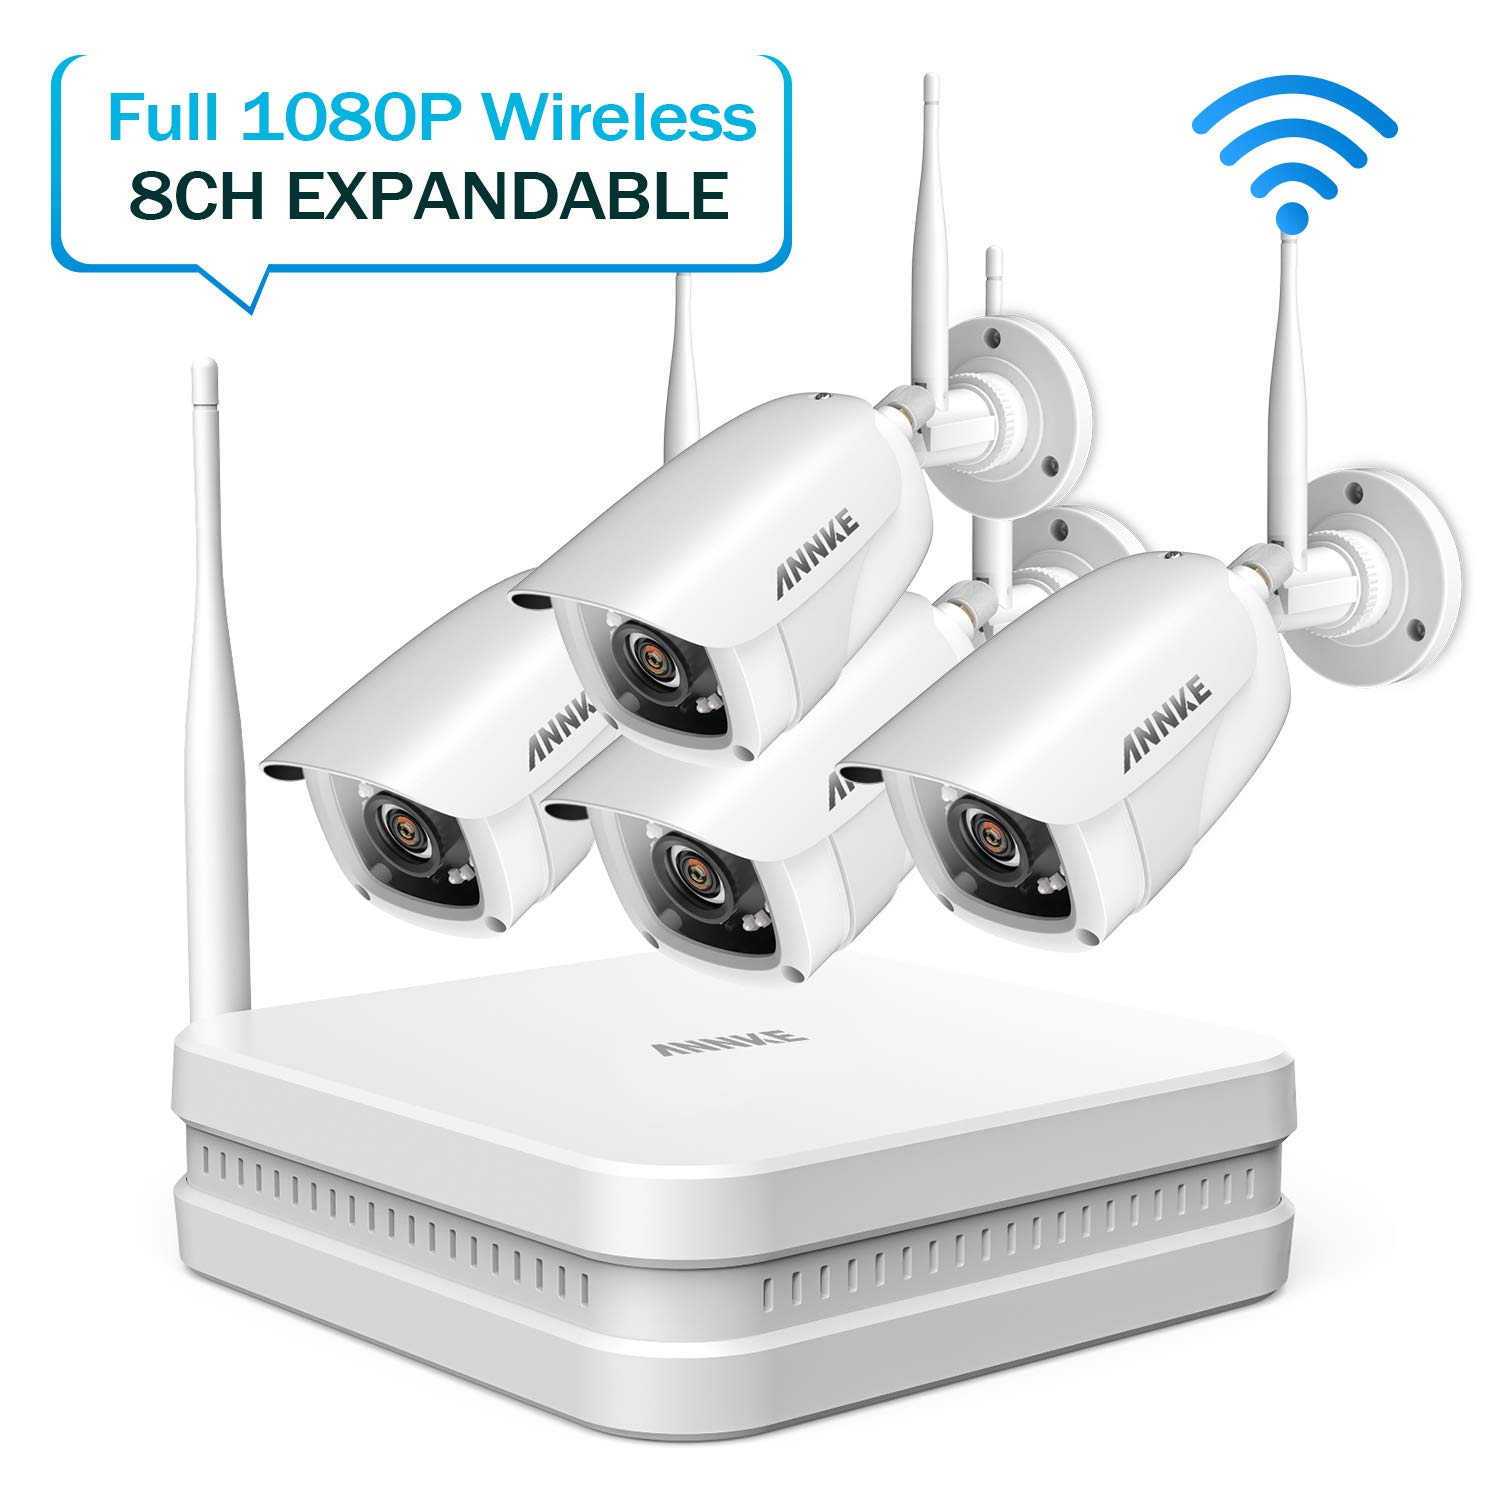 ANNKE Wireless Security Camera System- Full HD 1080P 8CH Wi-Fi NVR Video Surveillance System, 4×1080P Outdoor Bullet IP Cameras with Smart IR and 100ft Night Vision, Remote Access,NO Hard Drive